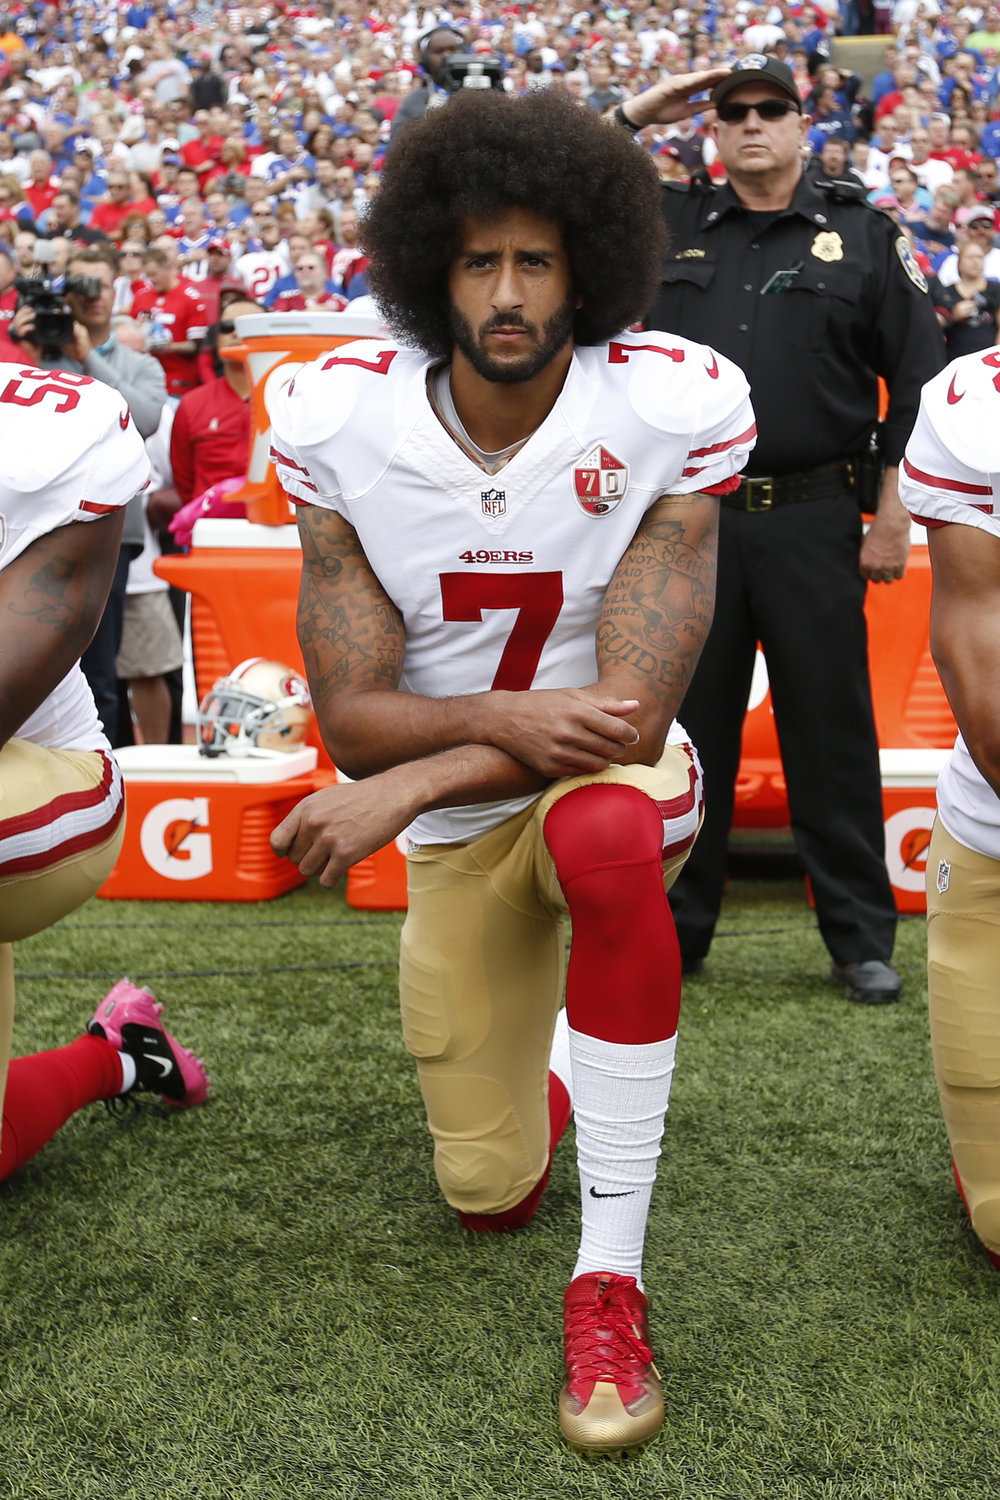 Colin Kaepernick knelt during the anthem before a game in October 2016. Photo Credit: John G Mabanglo/European Press Photo Agency.